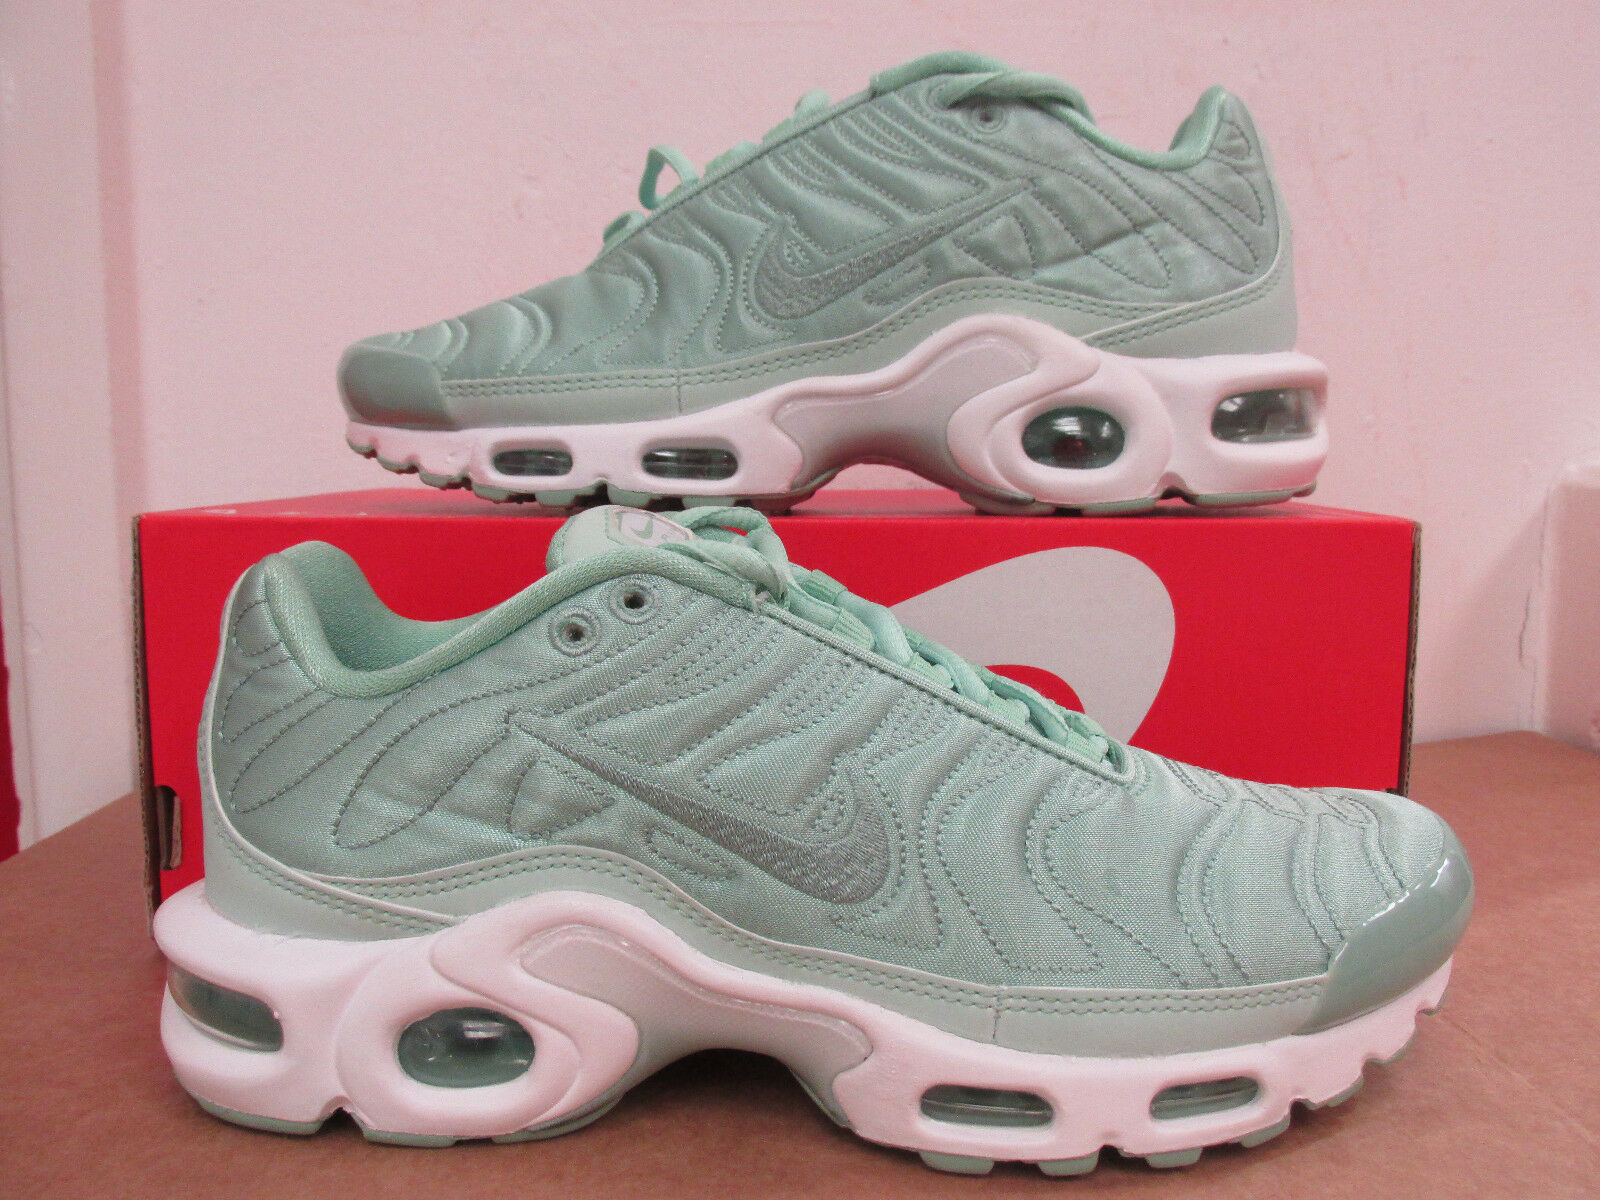 Nike SE WoHOMMES Air Max Plus SE Nike Running Trainers 830768 331 Baskets Chaussure CLEARANCE 62b5ca